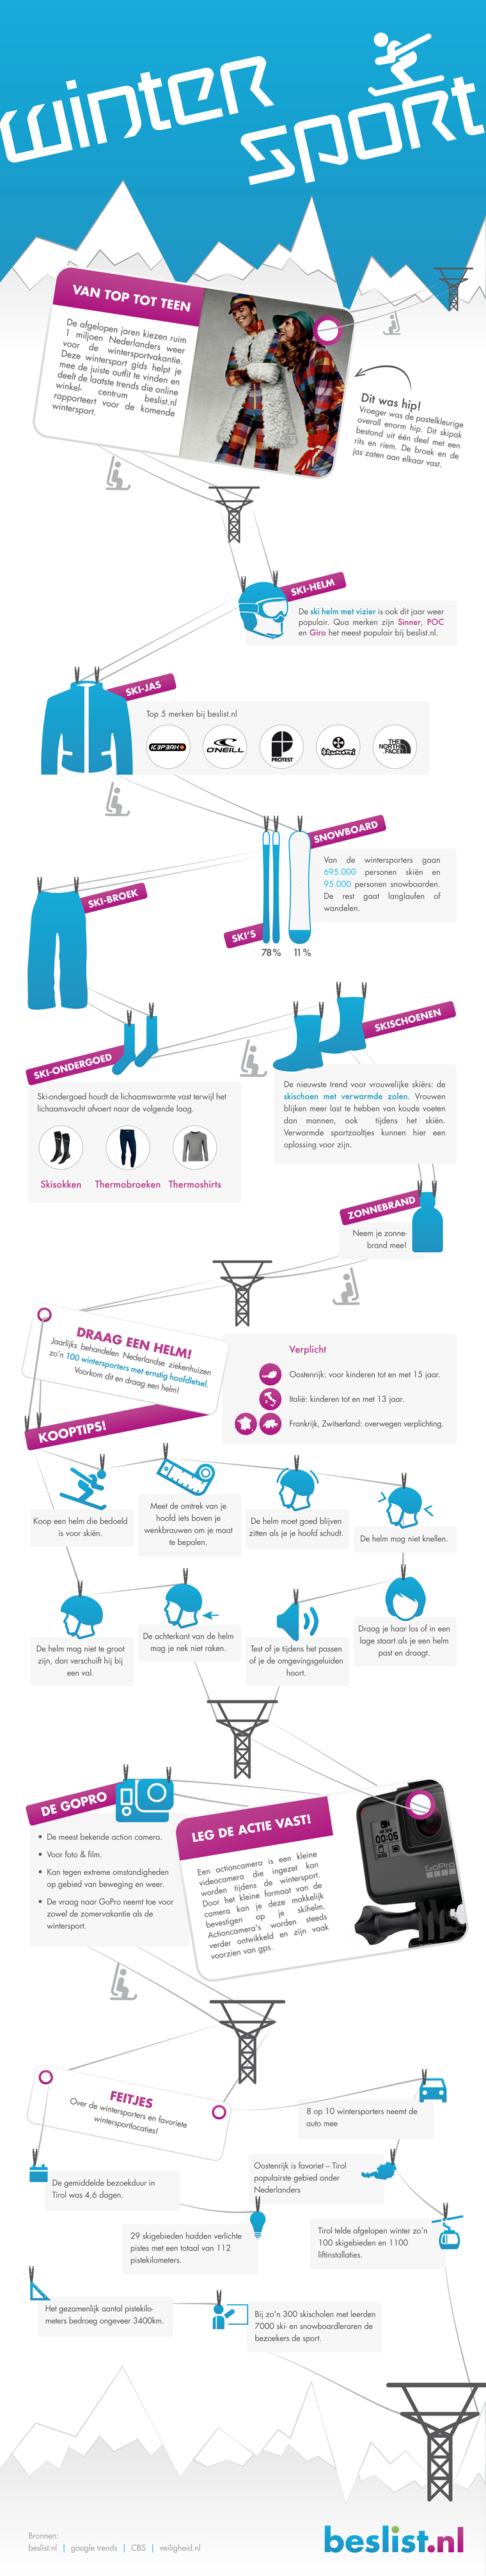 Infographic wintersport